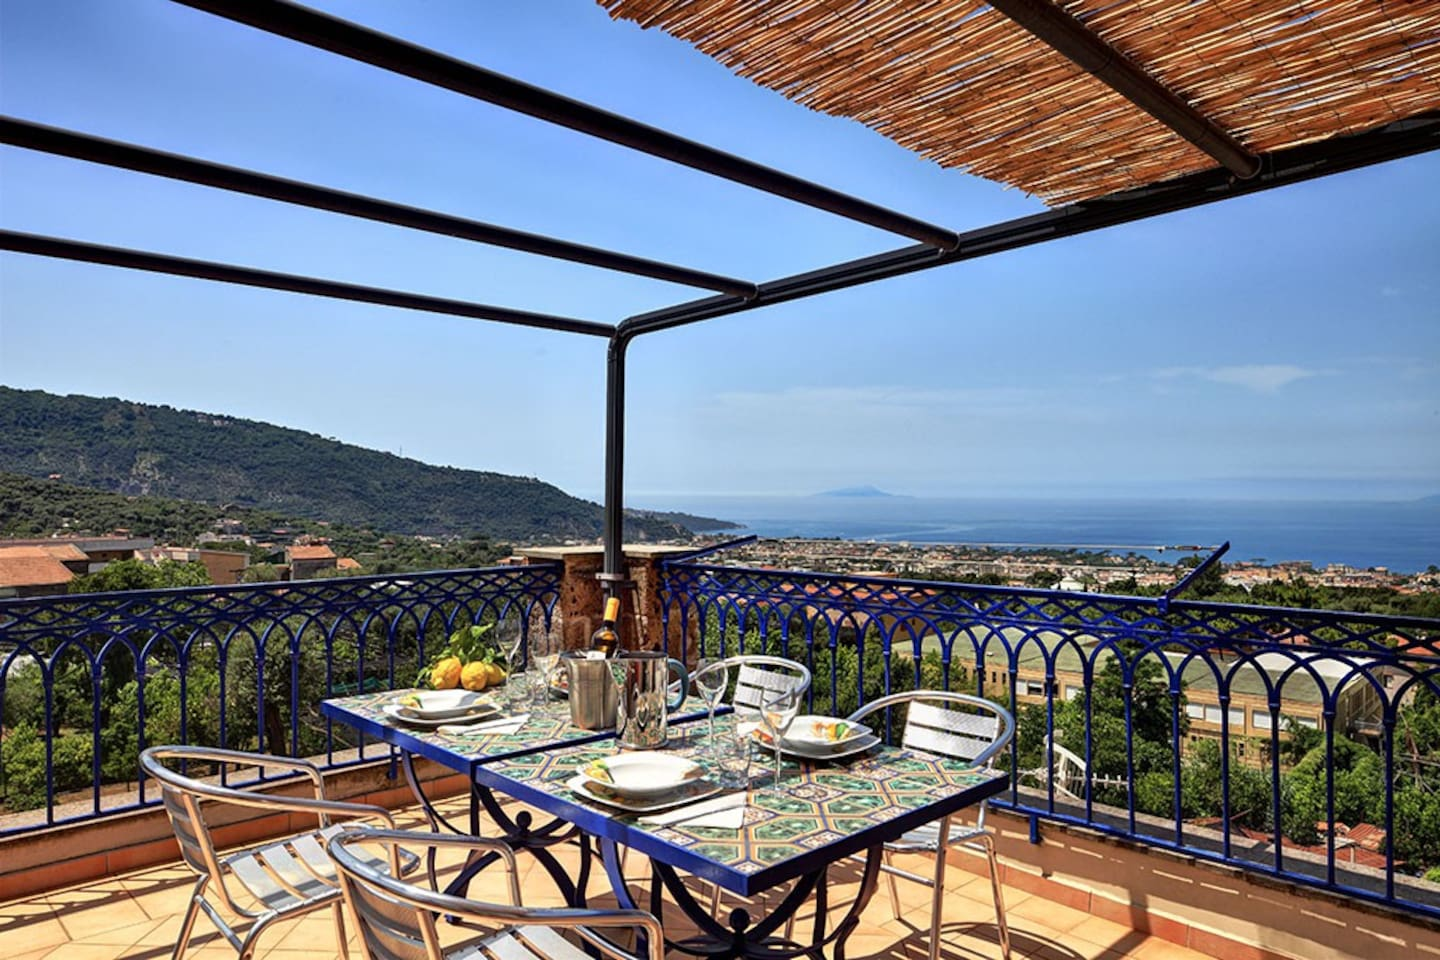 Your large private terrace, with a table and chairs, deckchairs and amazing panoramic views of the Gulf of Sorrento